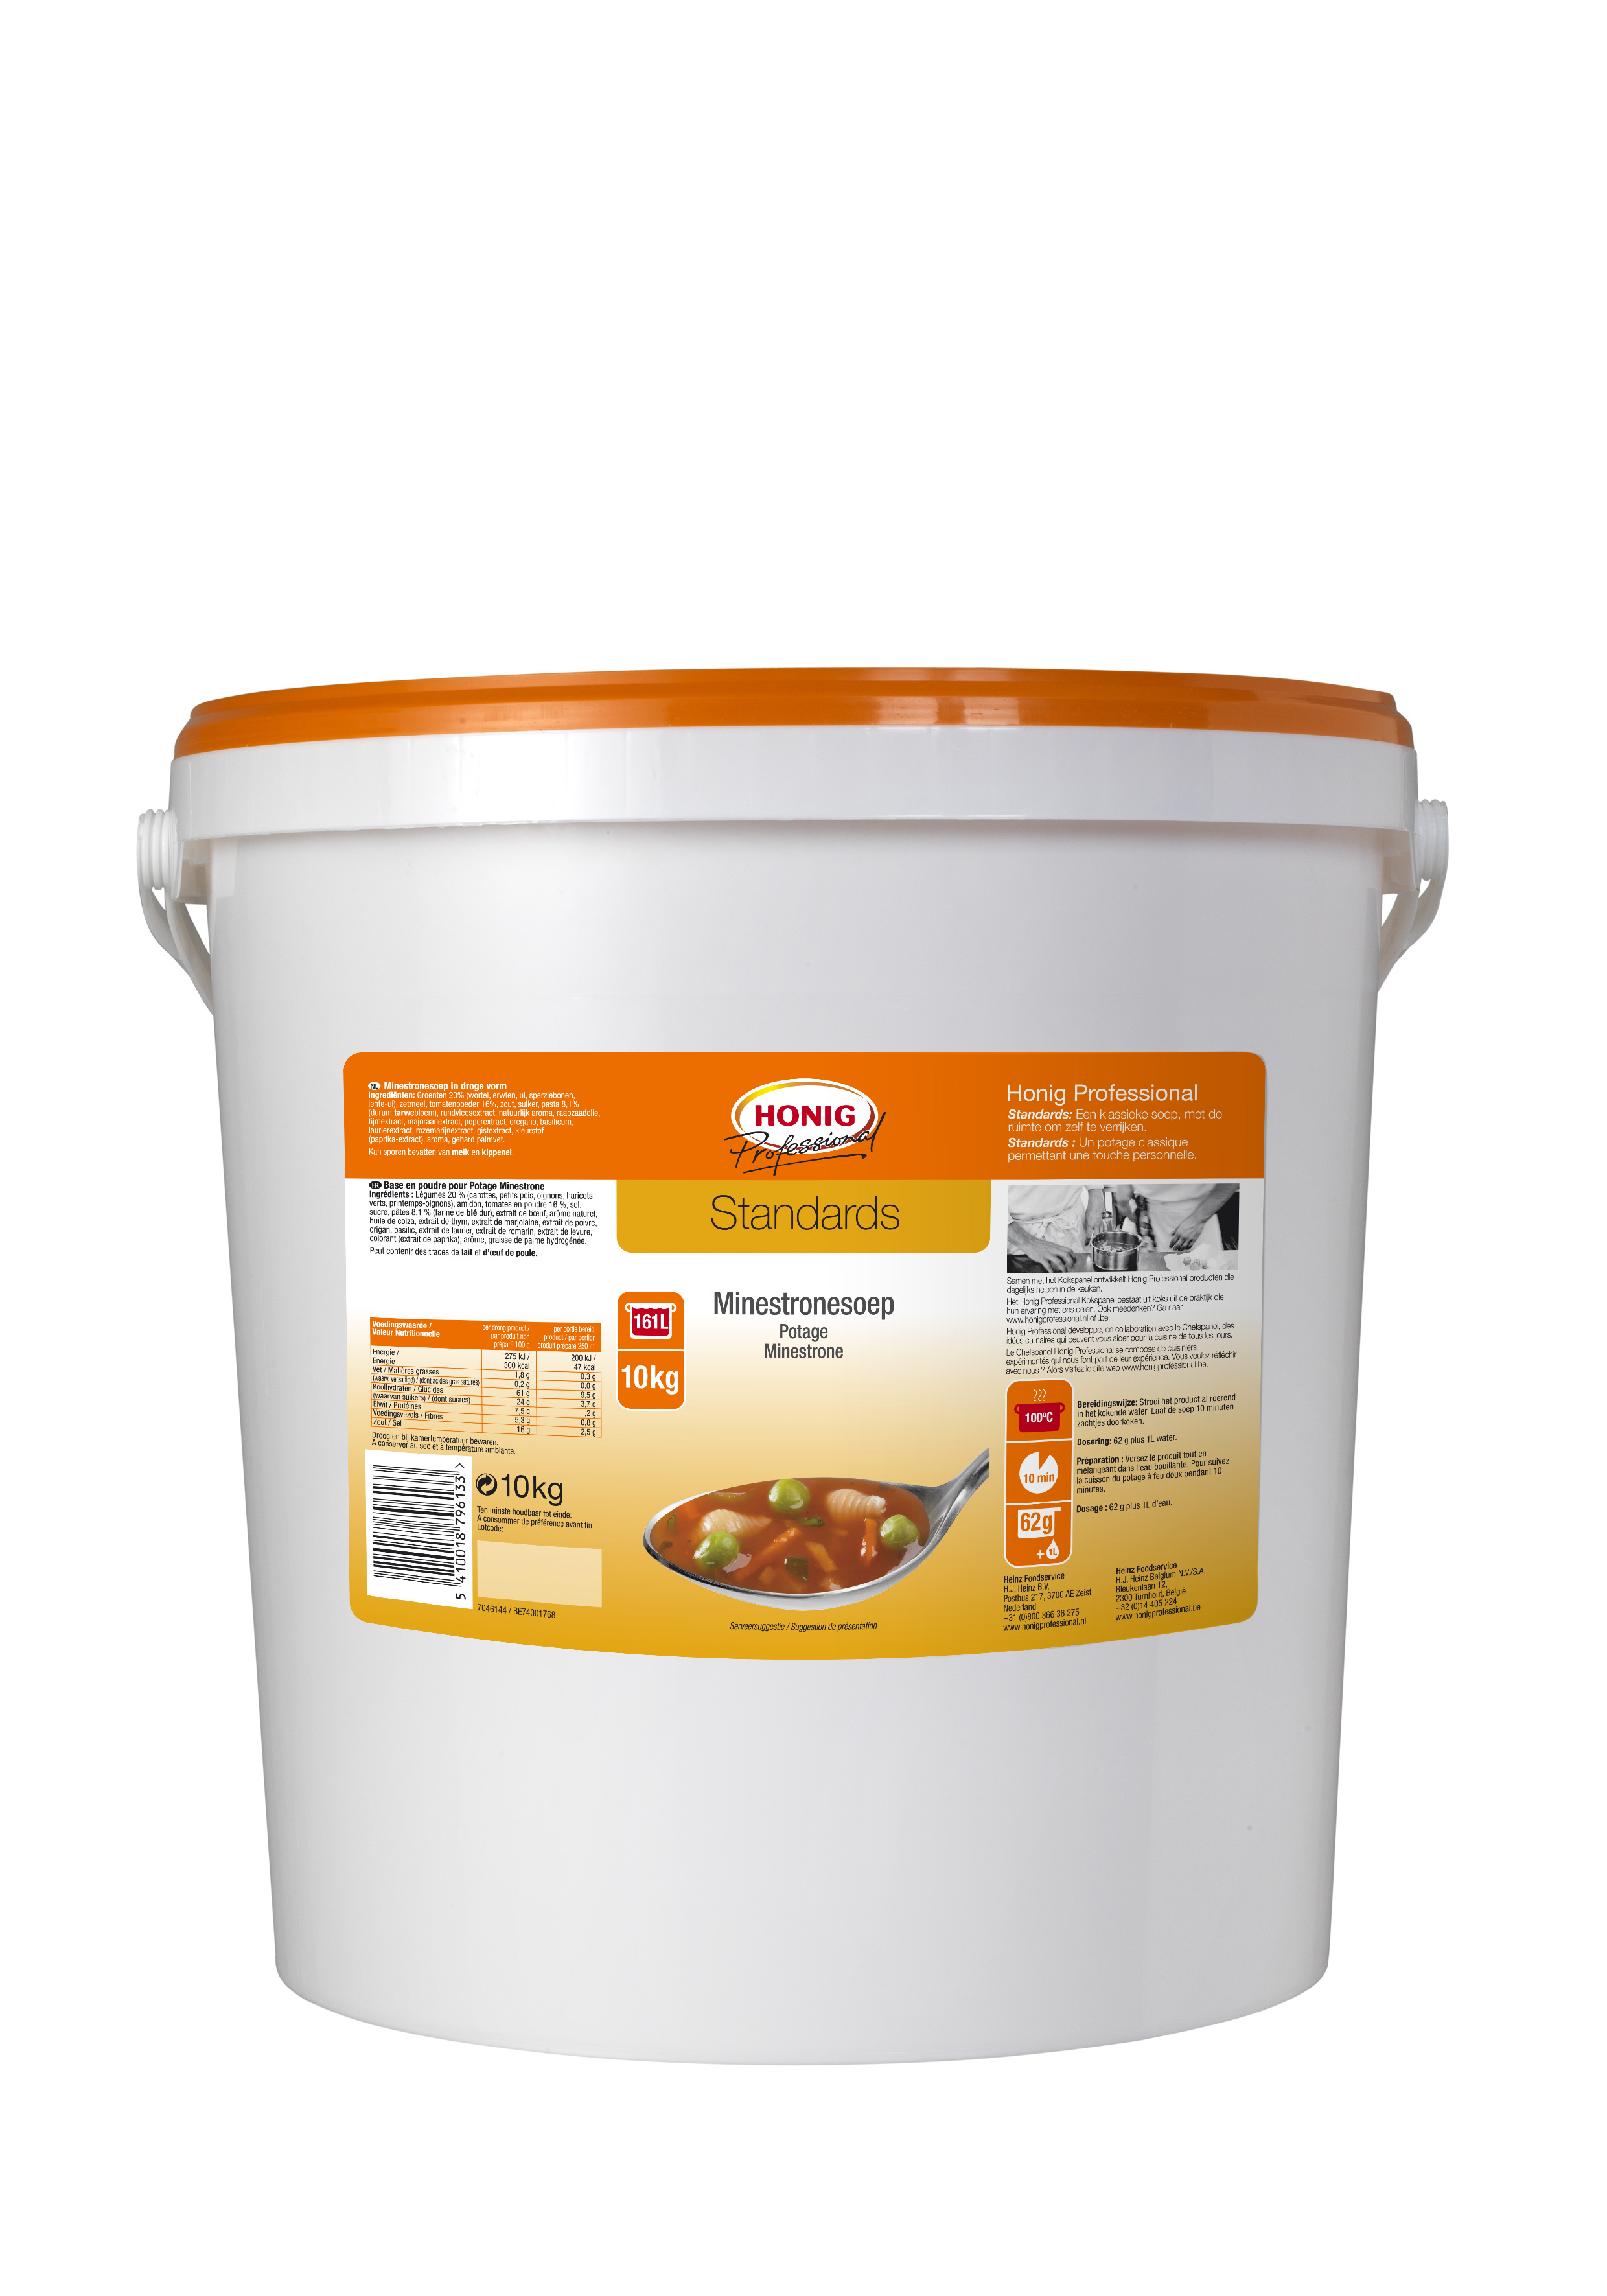 Honig For Professional Potage Minestrone 10L image